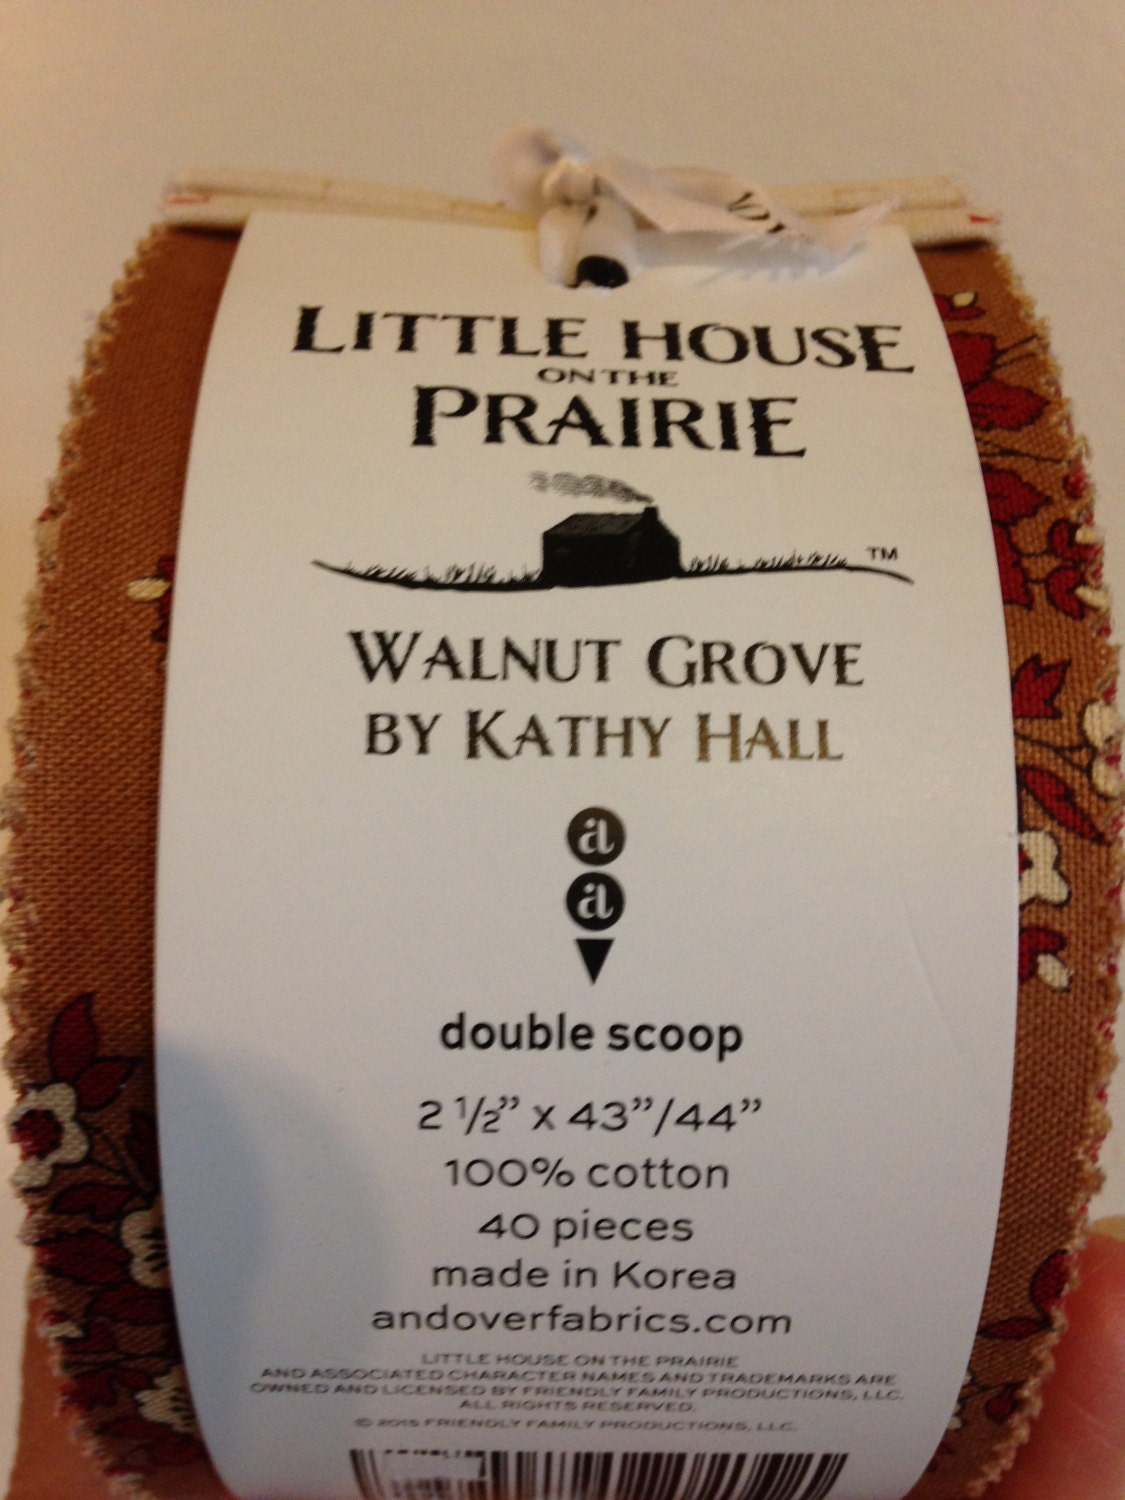 Little House On The Prairie Walnut Grove Jelly Roll From